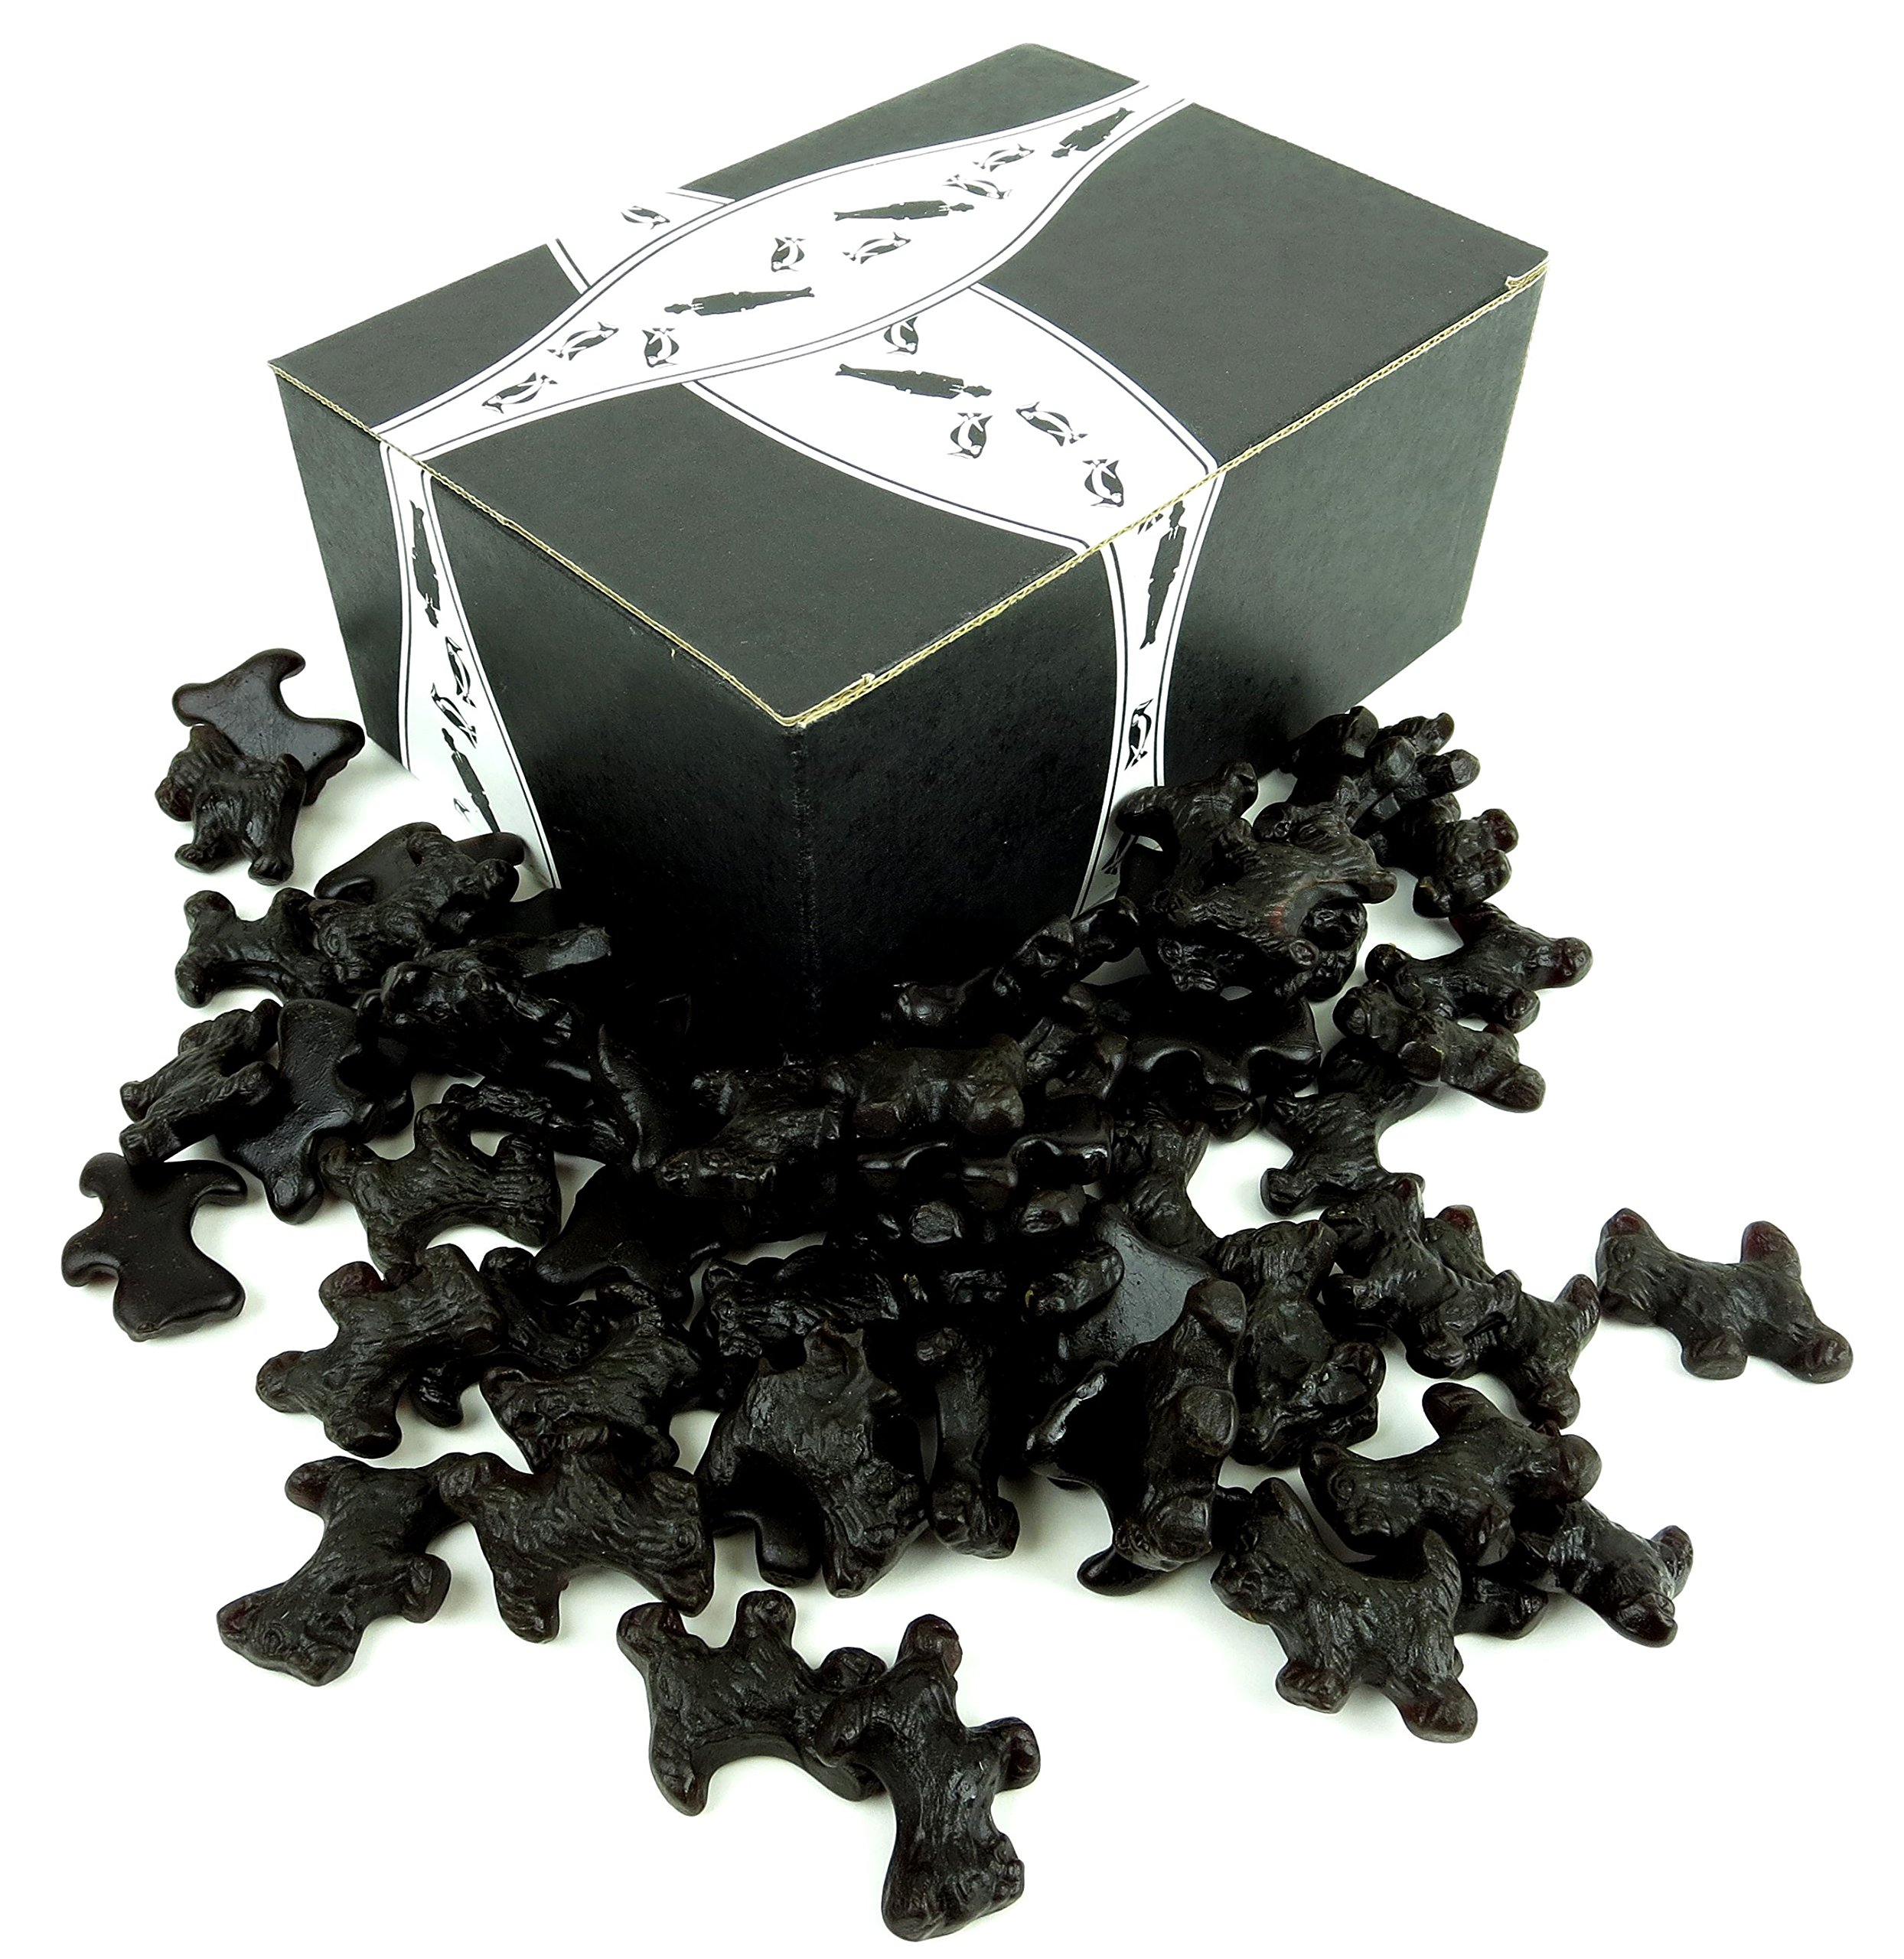 Gimbal's All Natural Black Licorice Scottie Dogs, 1 lb Bag in a BlackTie Box by Black Tie Mercantile (Image #1)